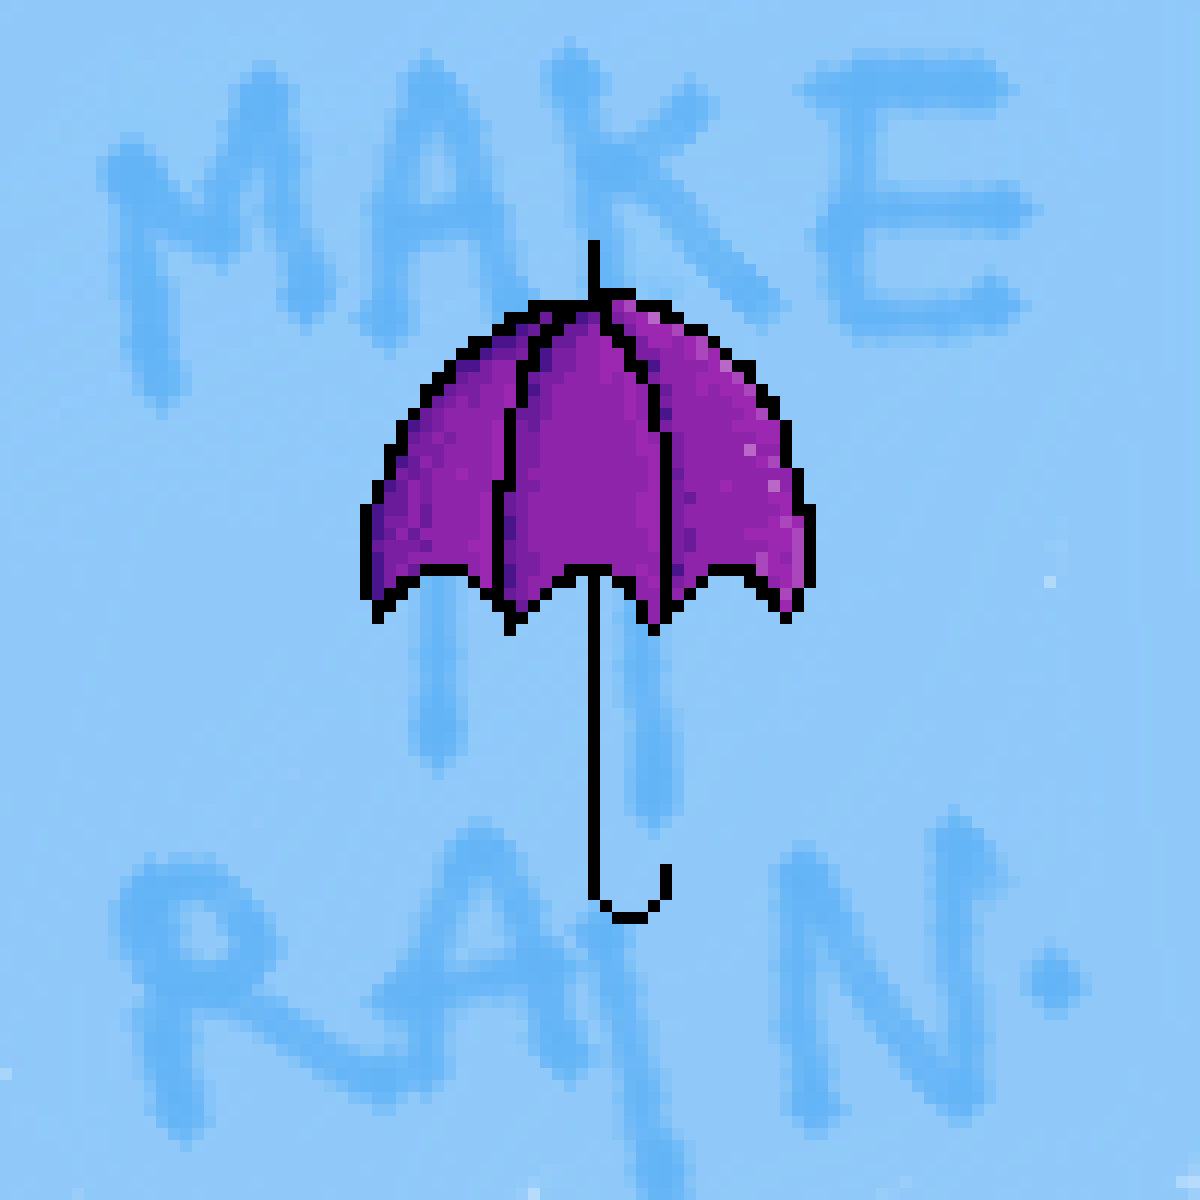 Here's an umbrella by snappyjaw